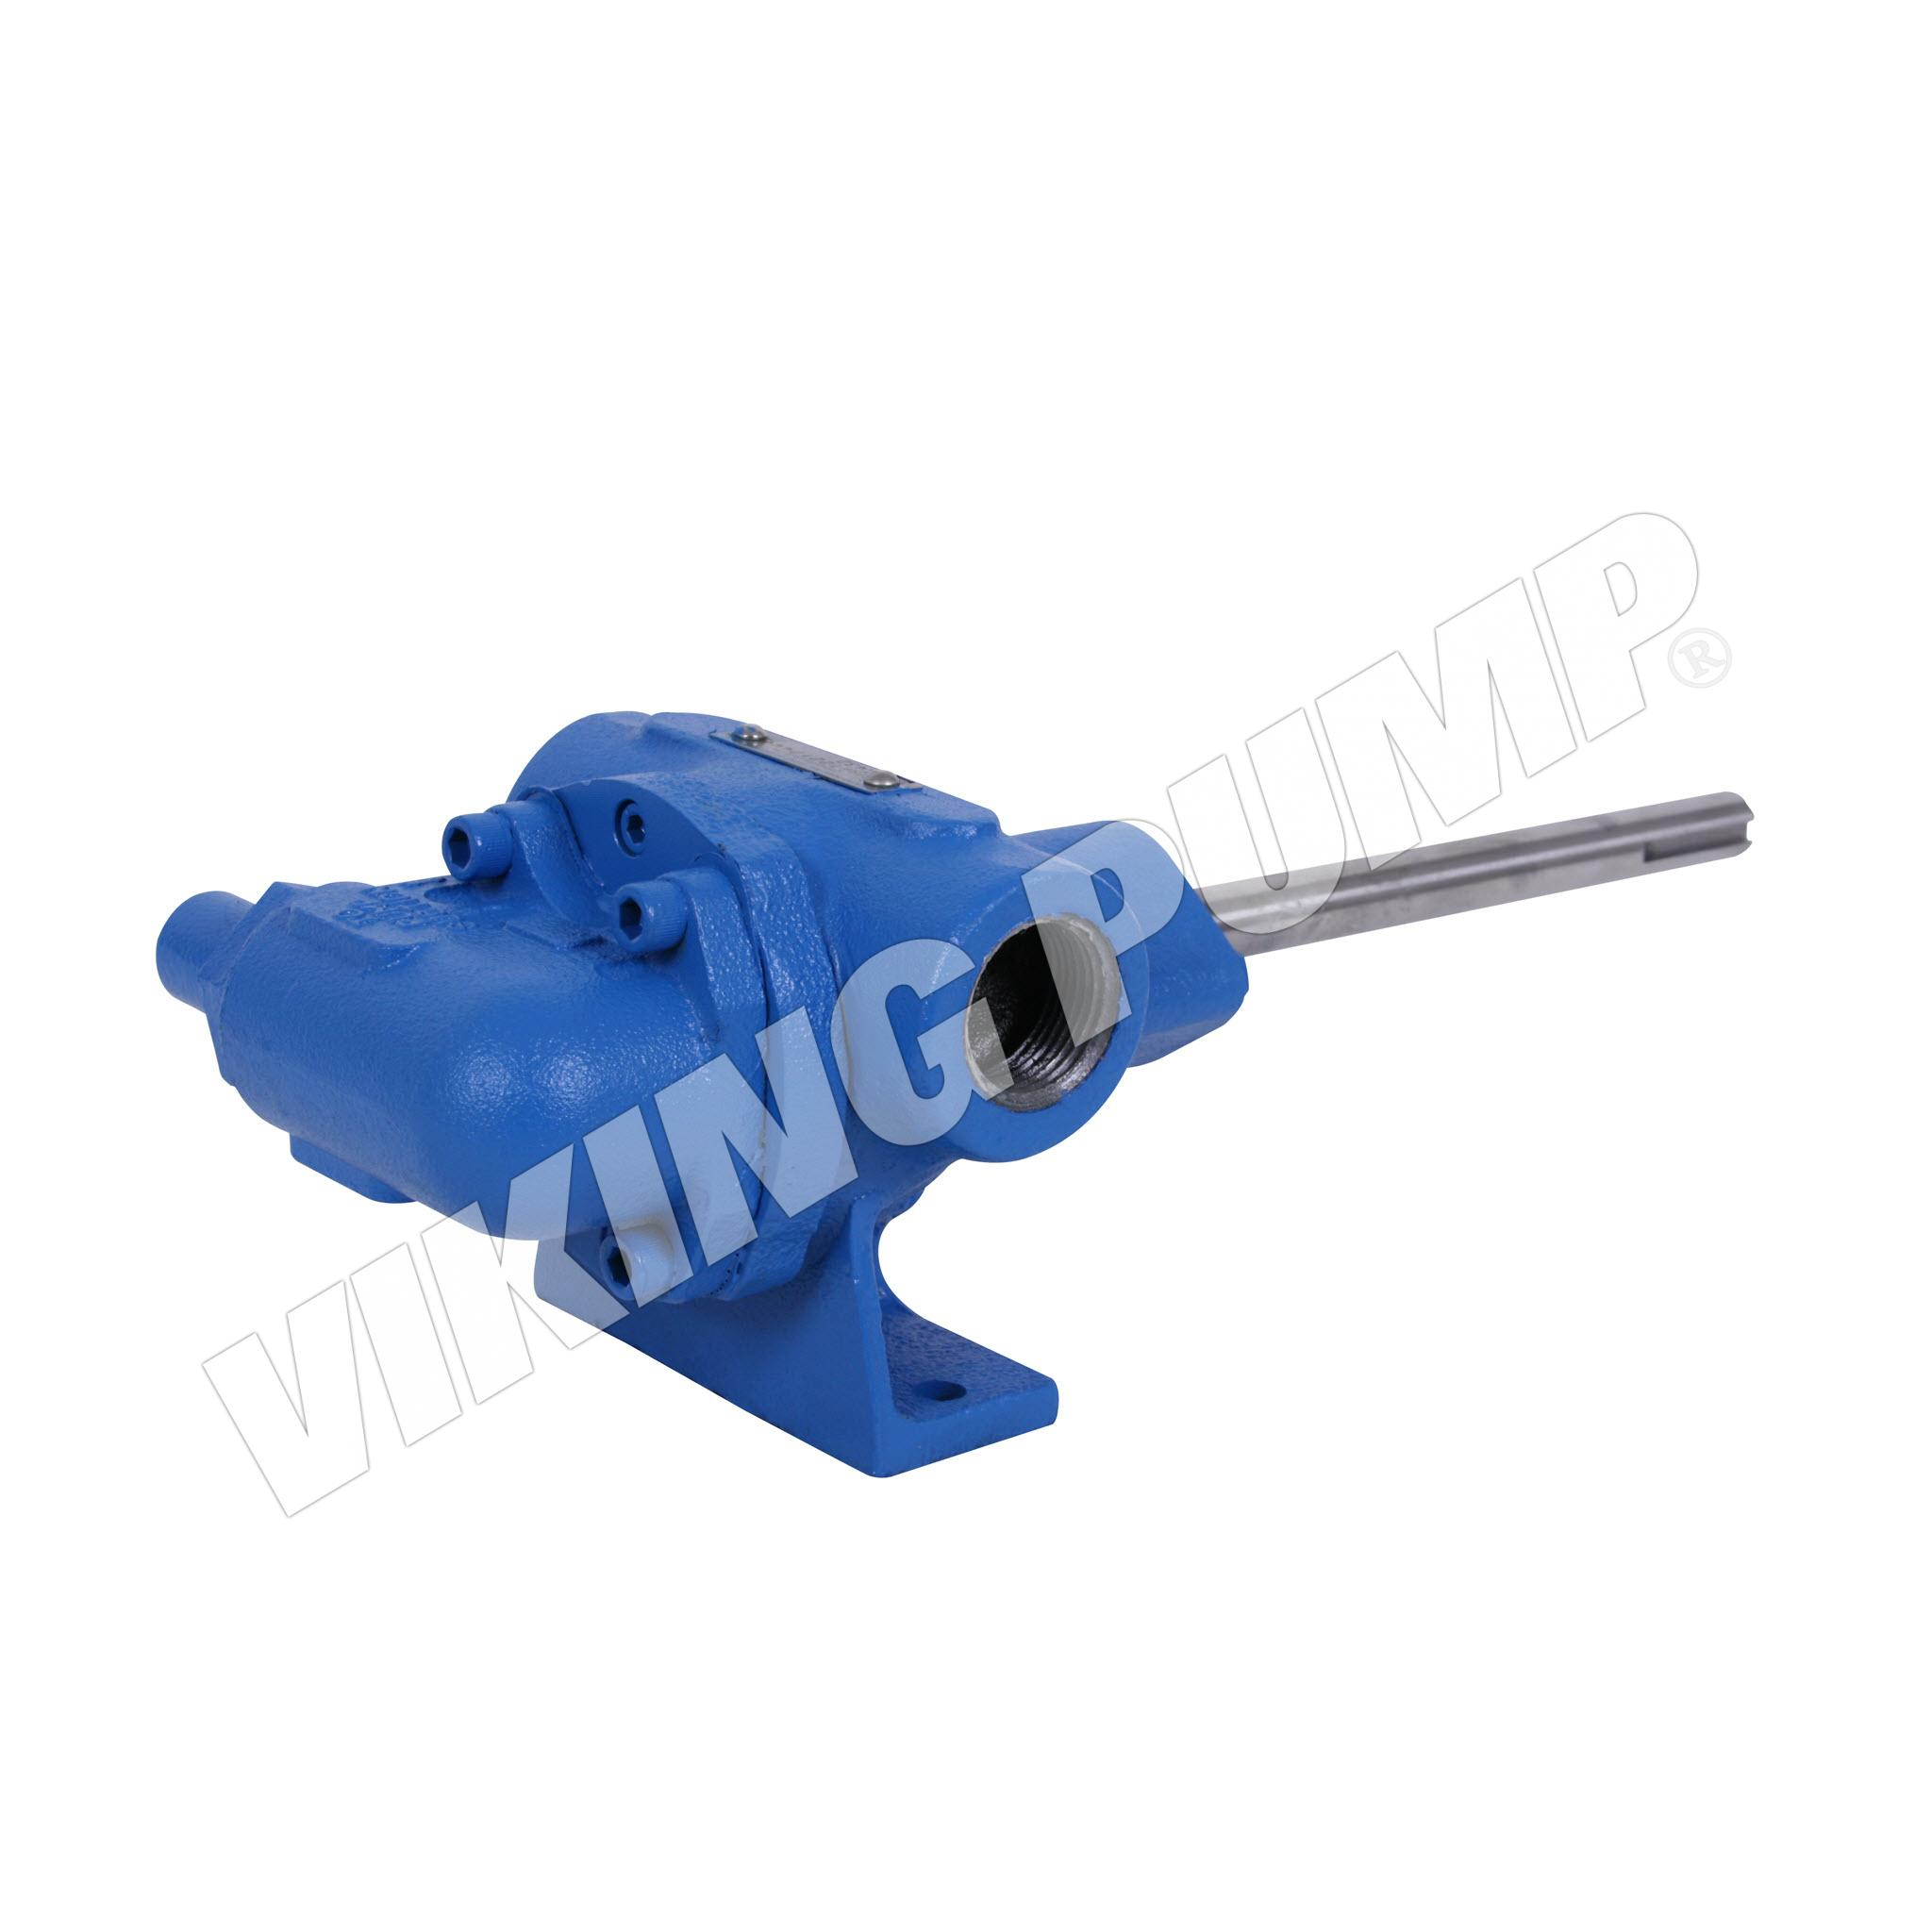 Model G432, Foot Mounted, Mechanical Seal, Relief Valve Pump